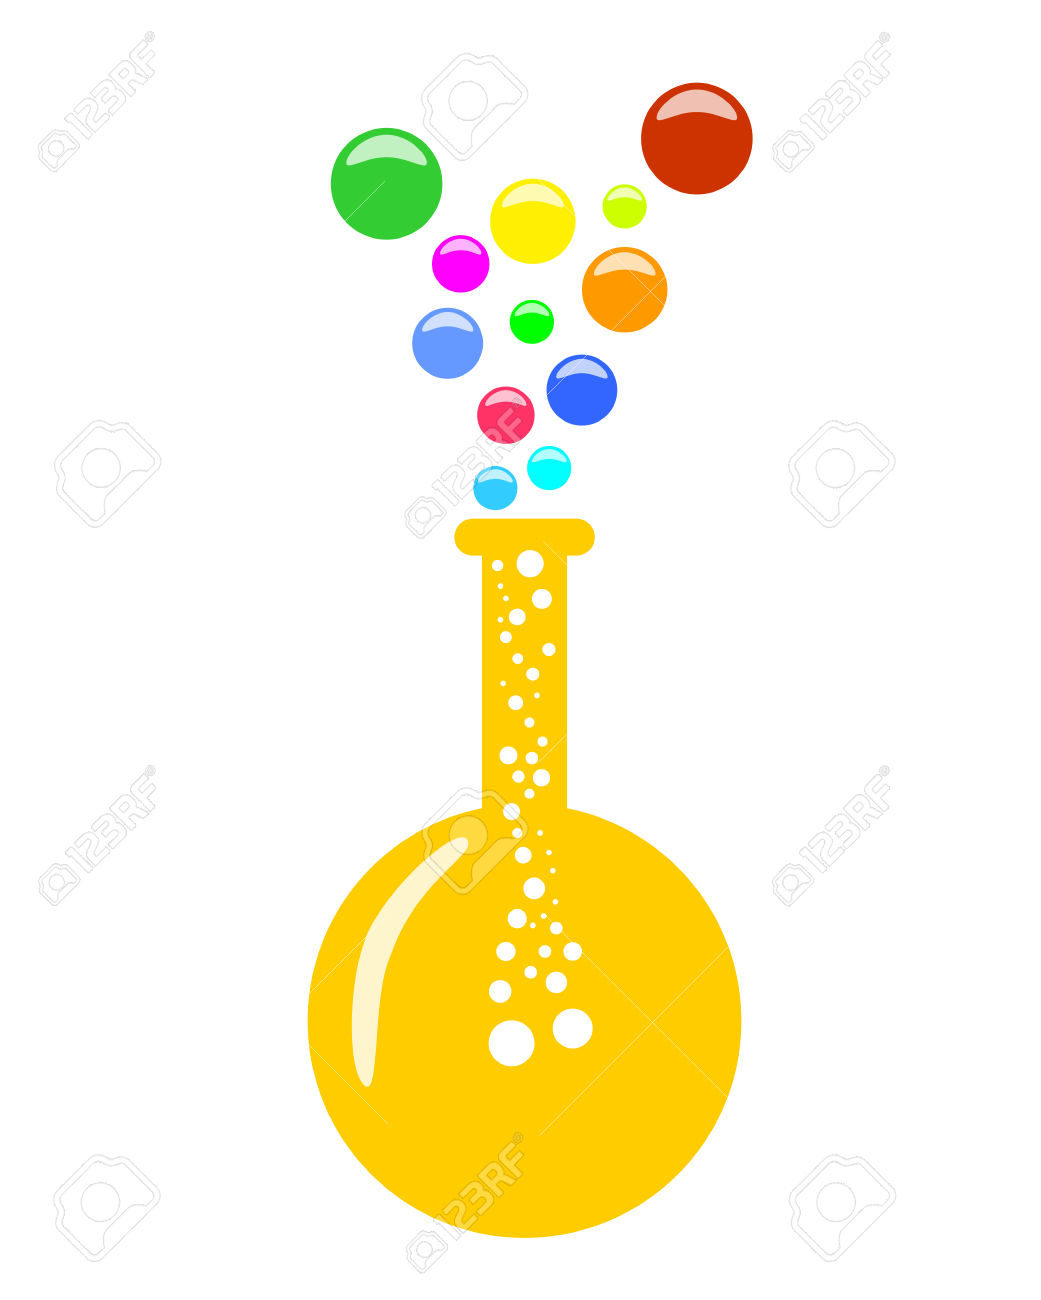 Abstract Round Bottom Chemical Flask With Vapor, 2D Illustration.